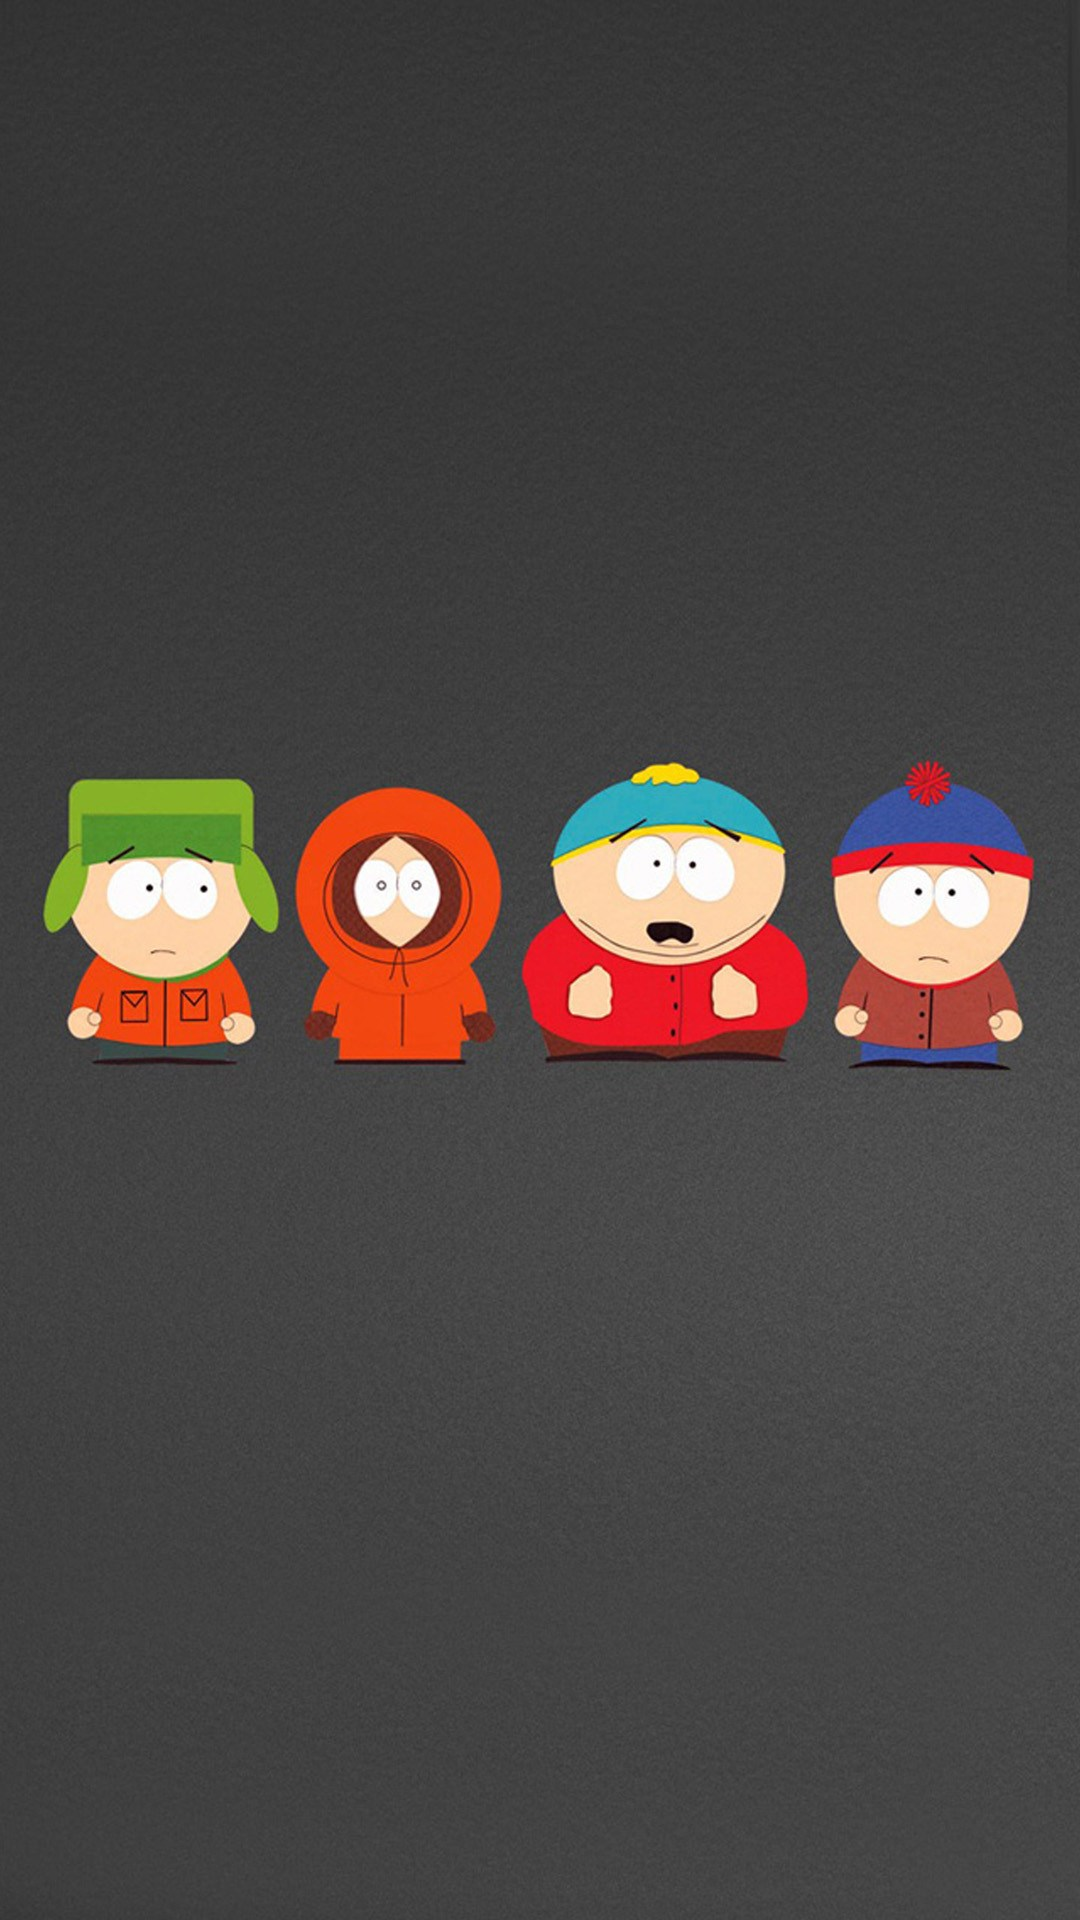 Funny South Park Wallpapers 65 Images South Park Wallpaper For